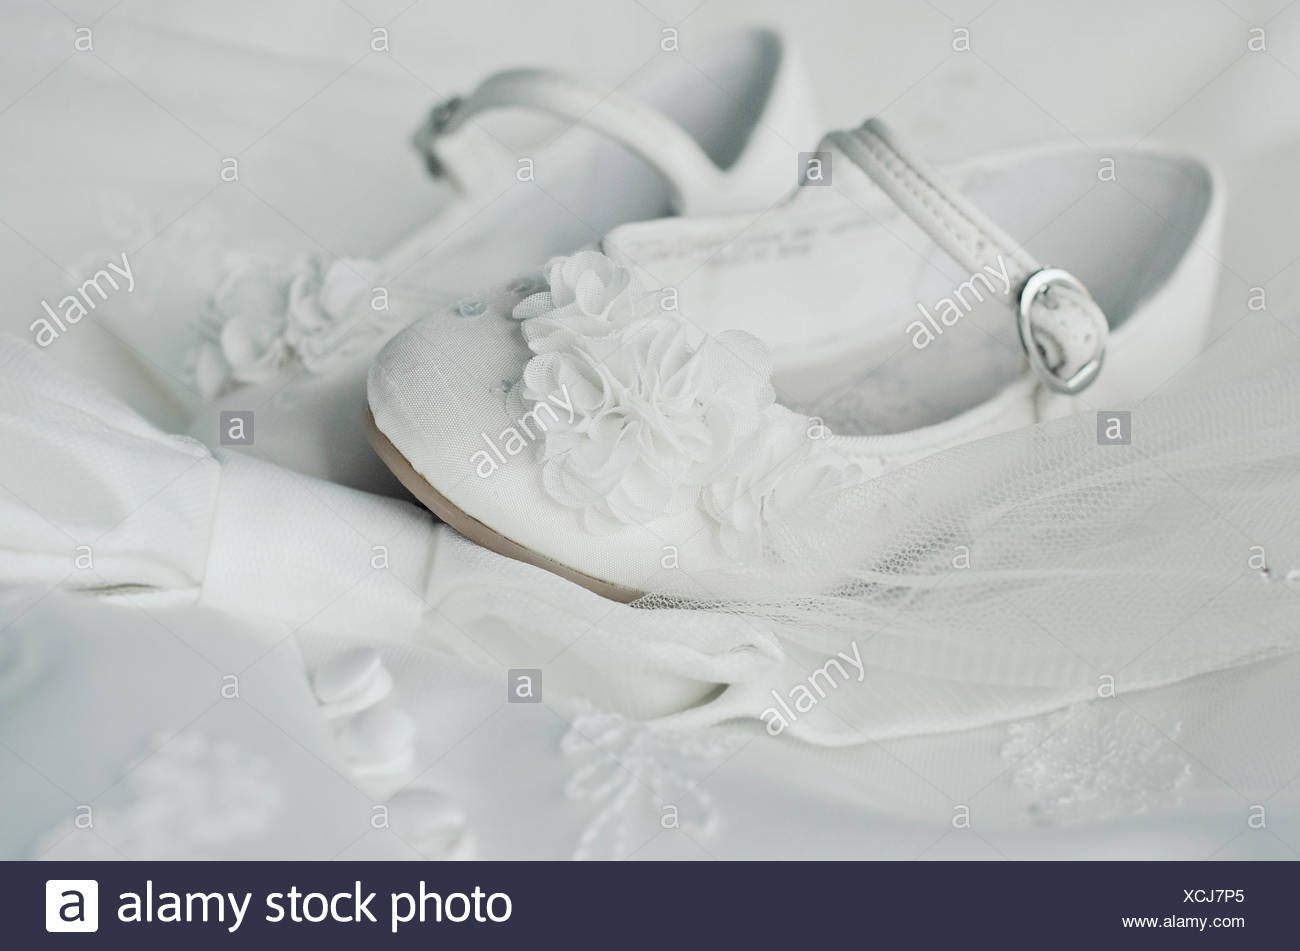 Close-up of Bridesmaid's Shoes - Stock Image